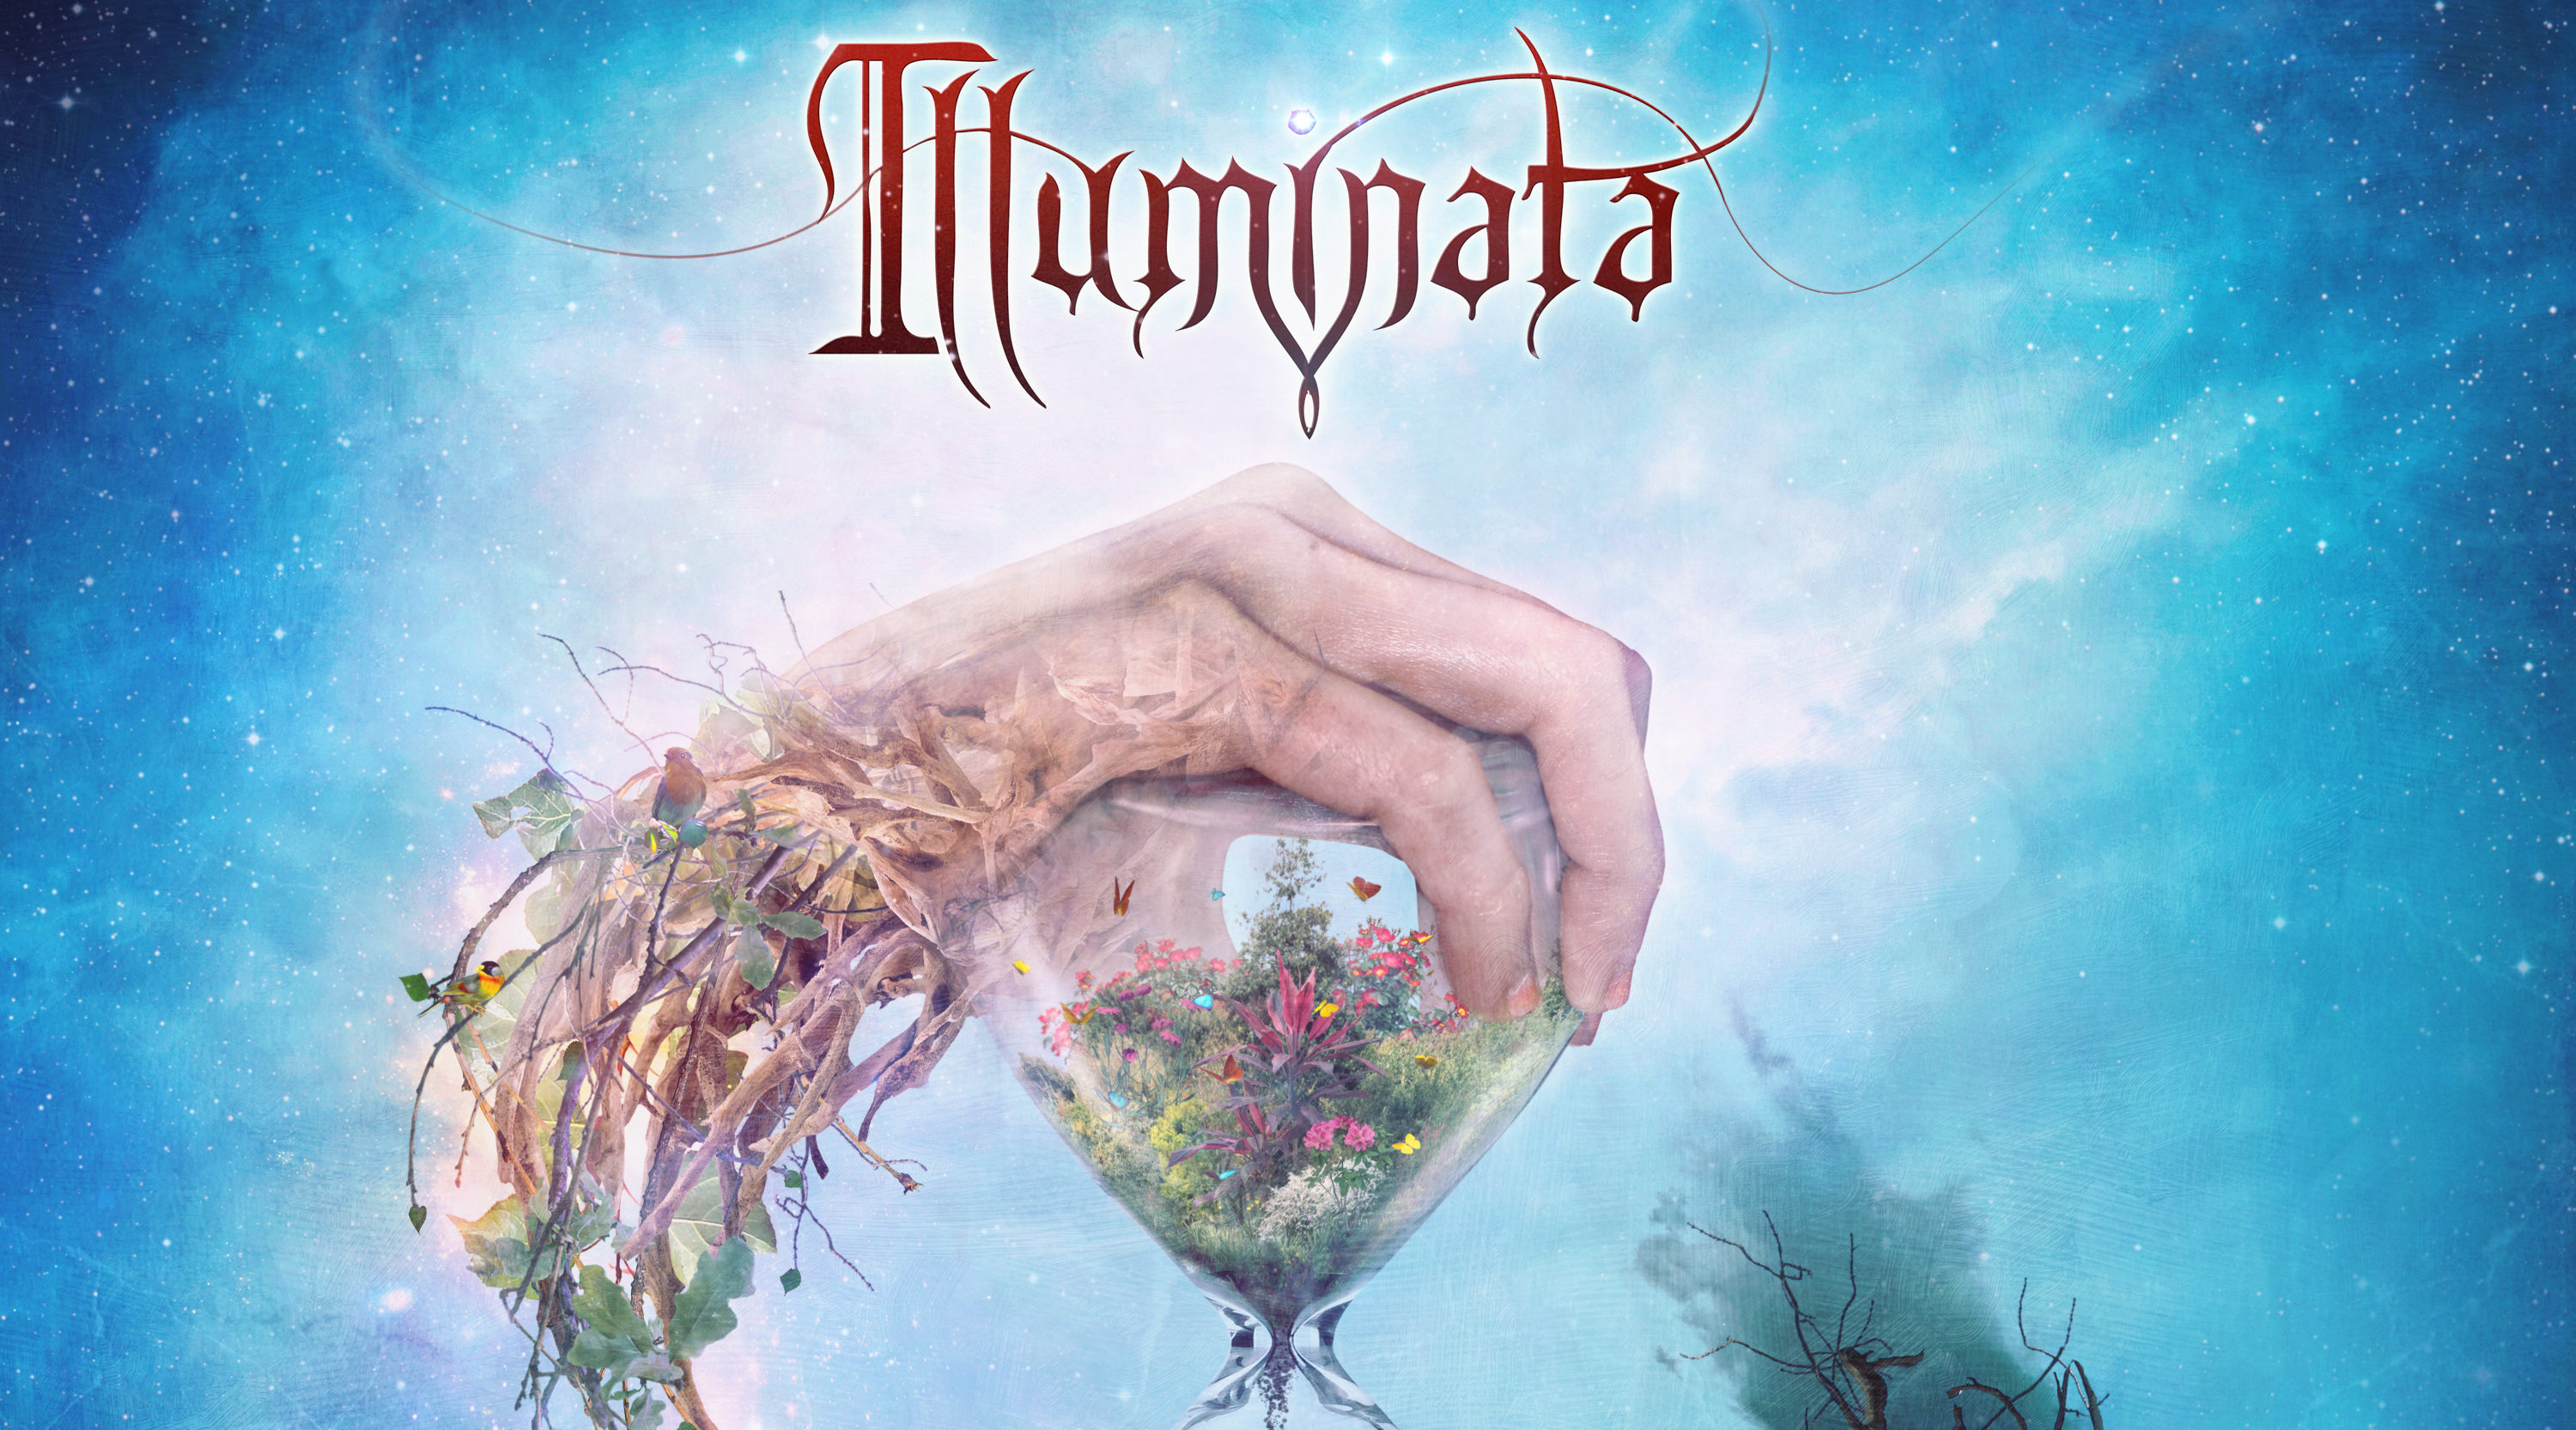 ILLUMINATA – Where Stories Unfold